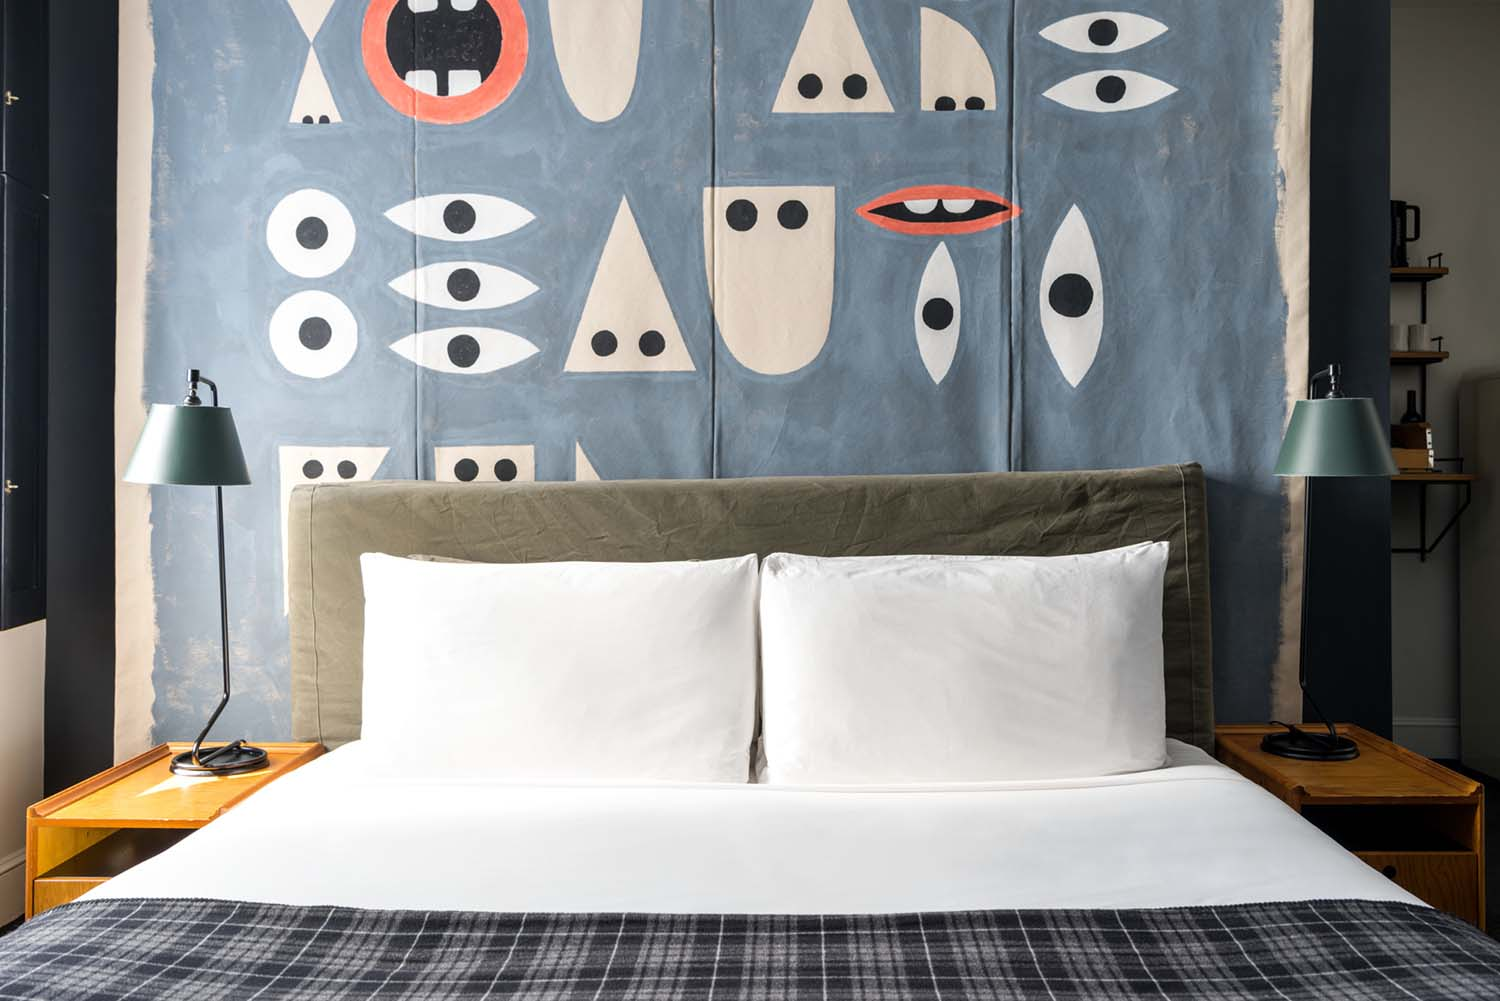 Ace Hotel New York, Revisiting the Original Hip Hotel in NoMad Manhattan